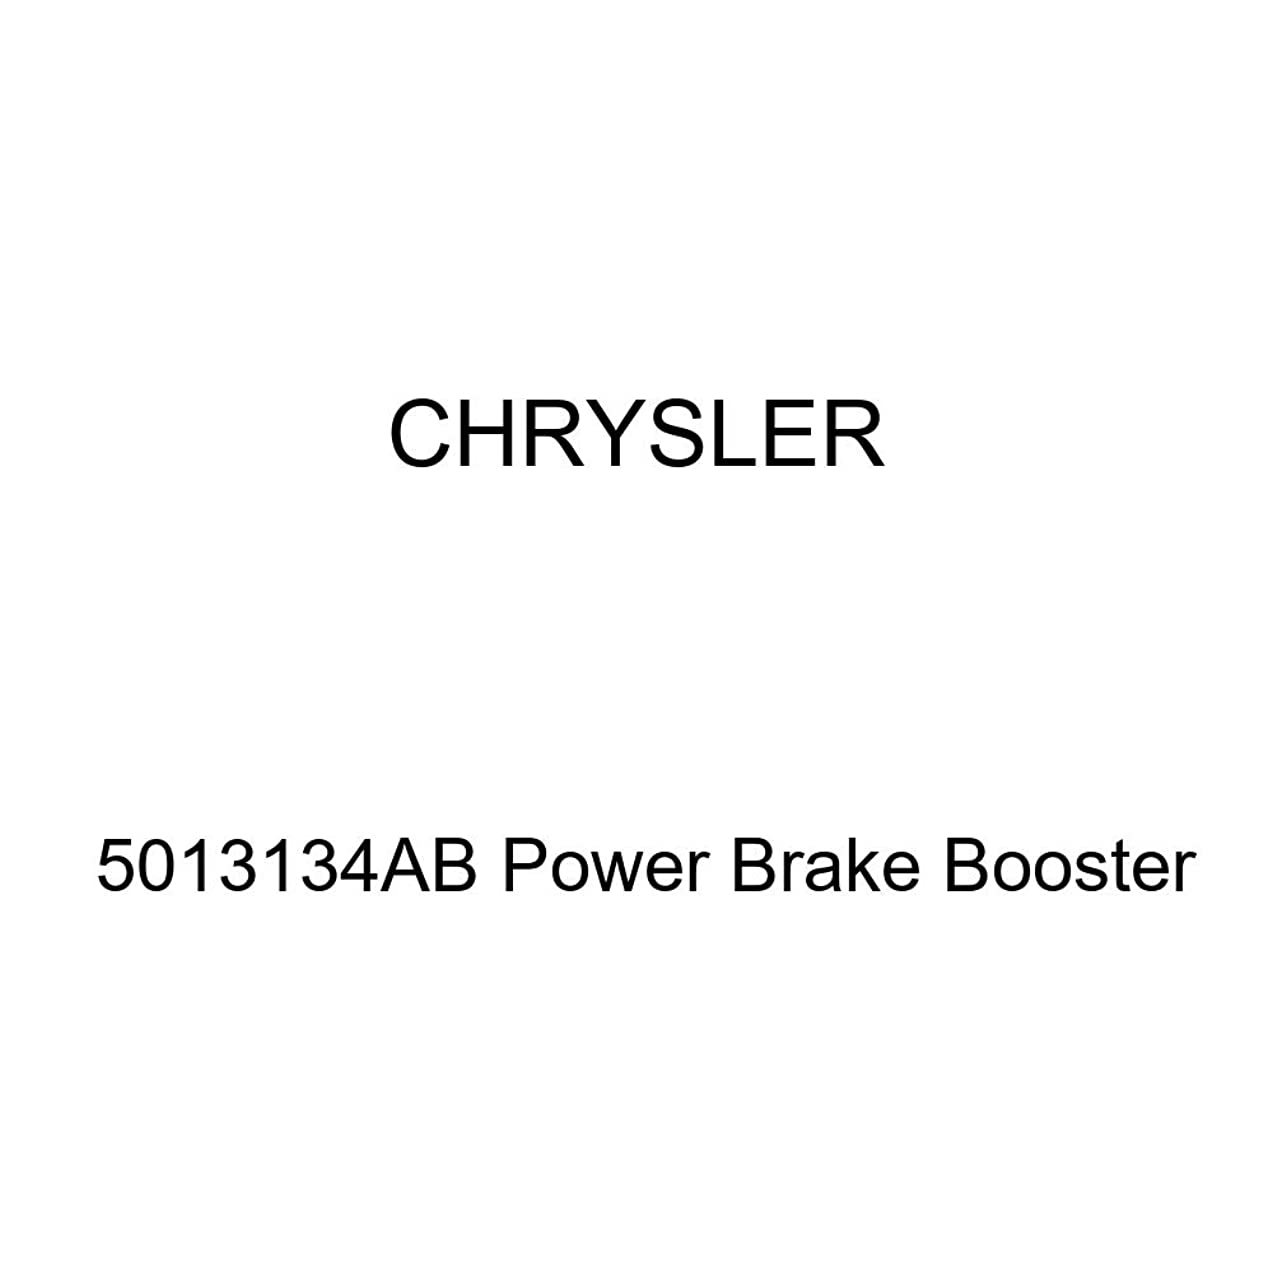 Genuine Chrysler 5013134AB Power Brake Booster